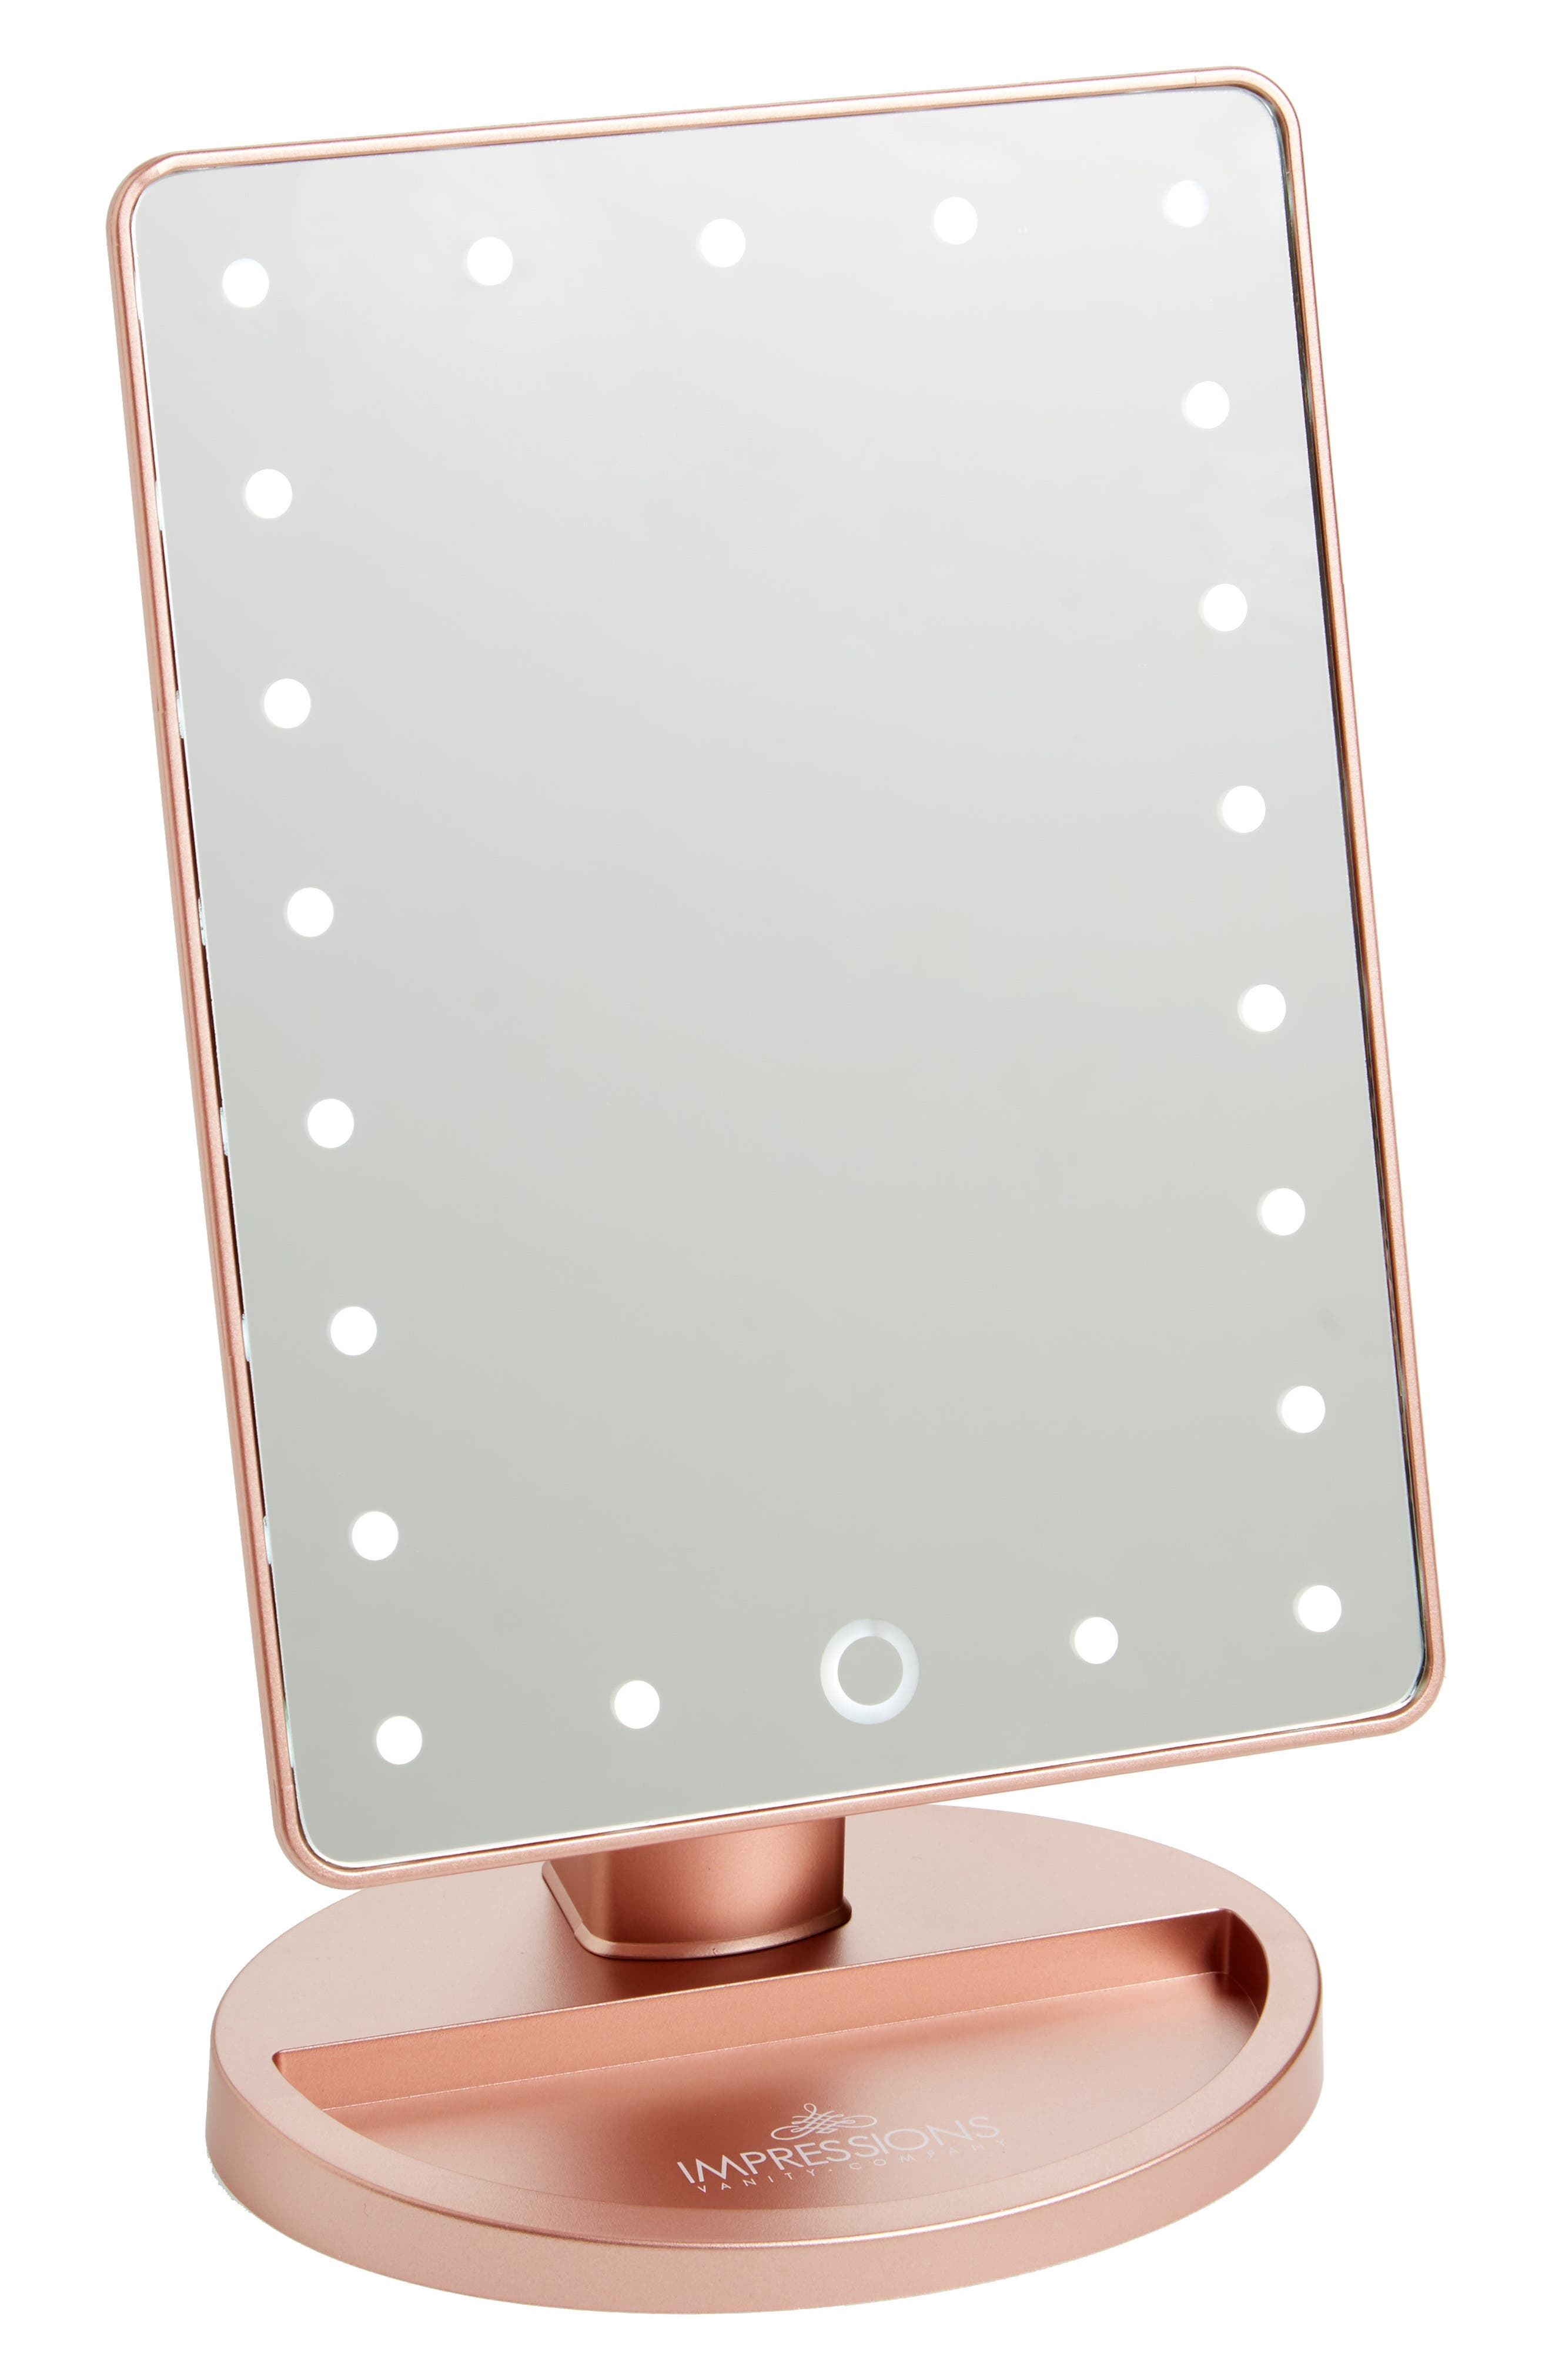 Main Image - Impressions Vanity Co. Touch 2.0 LED Vanity Mirror